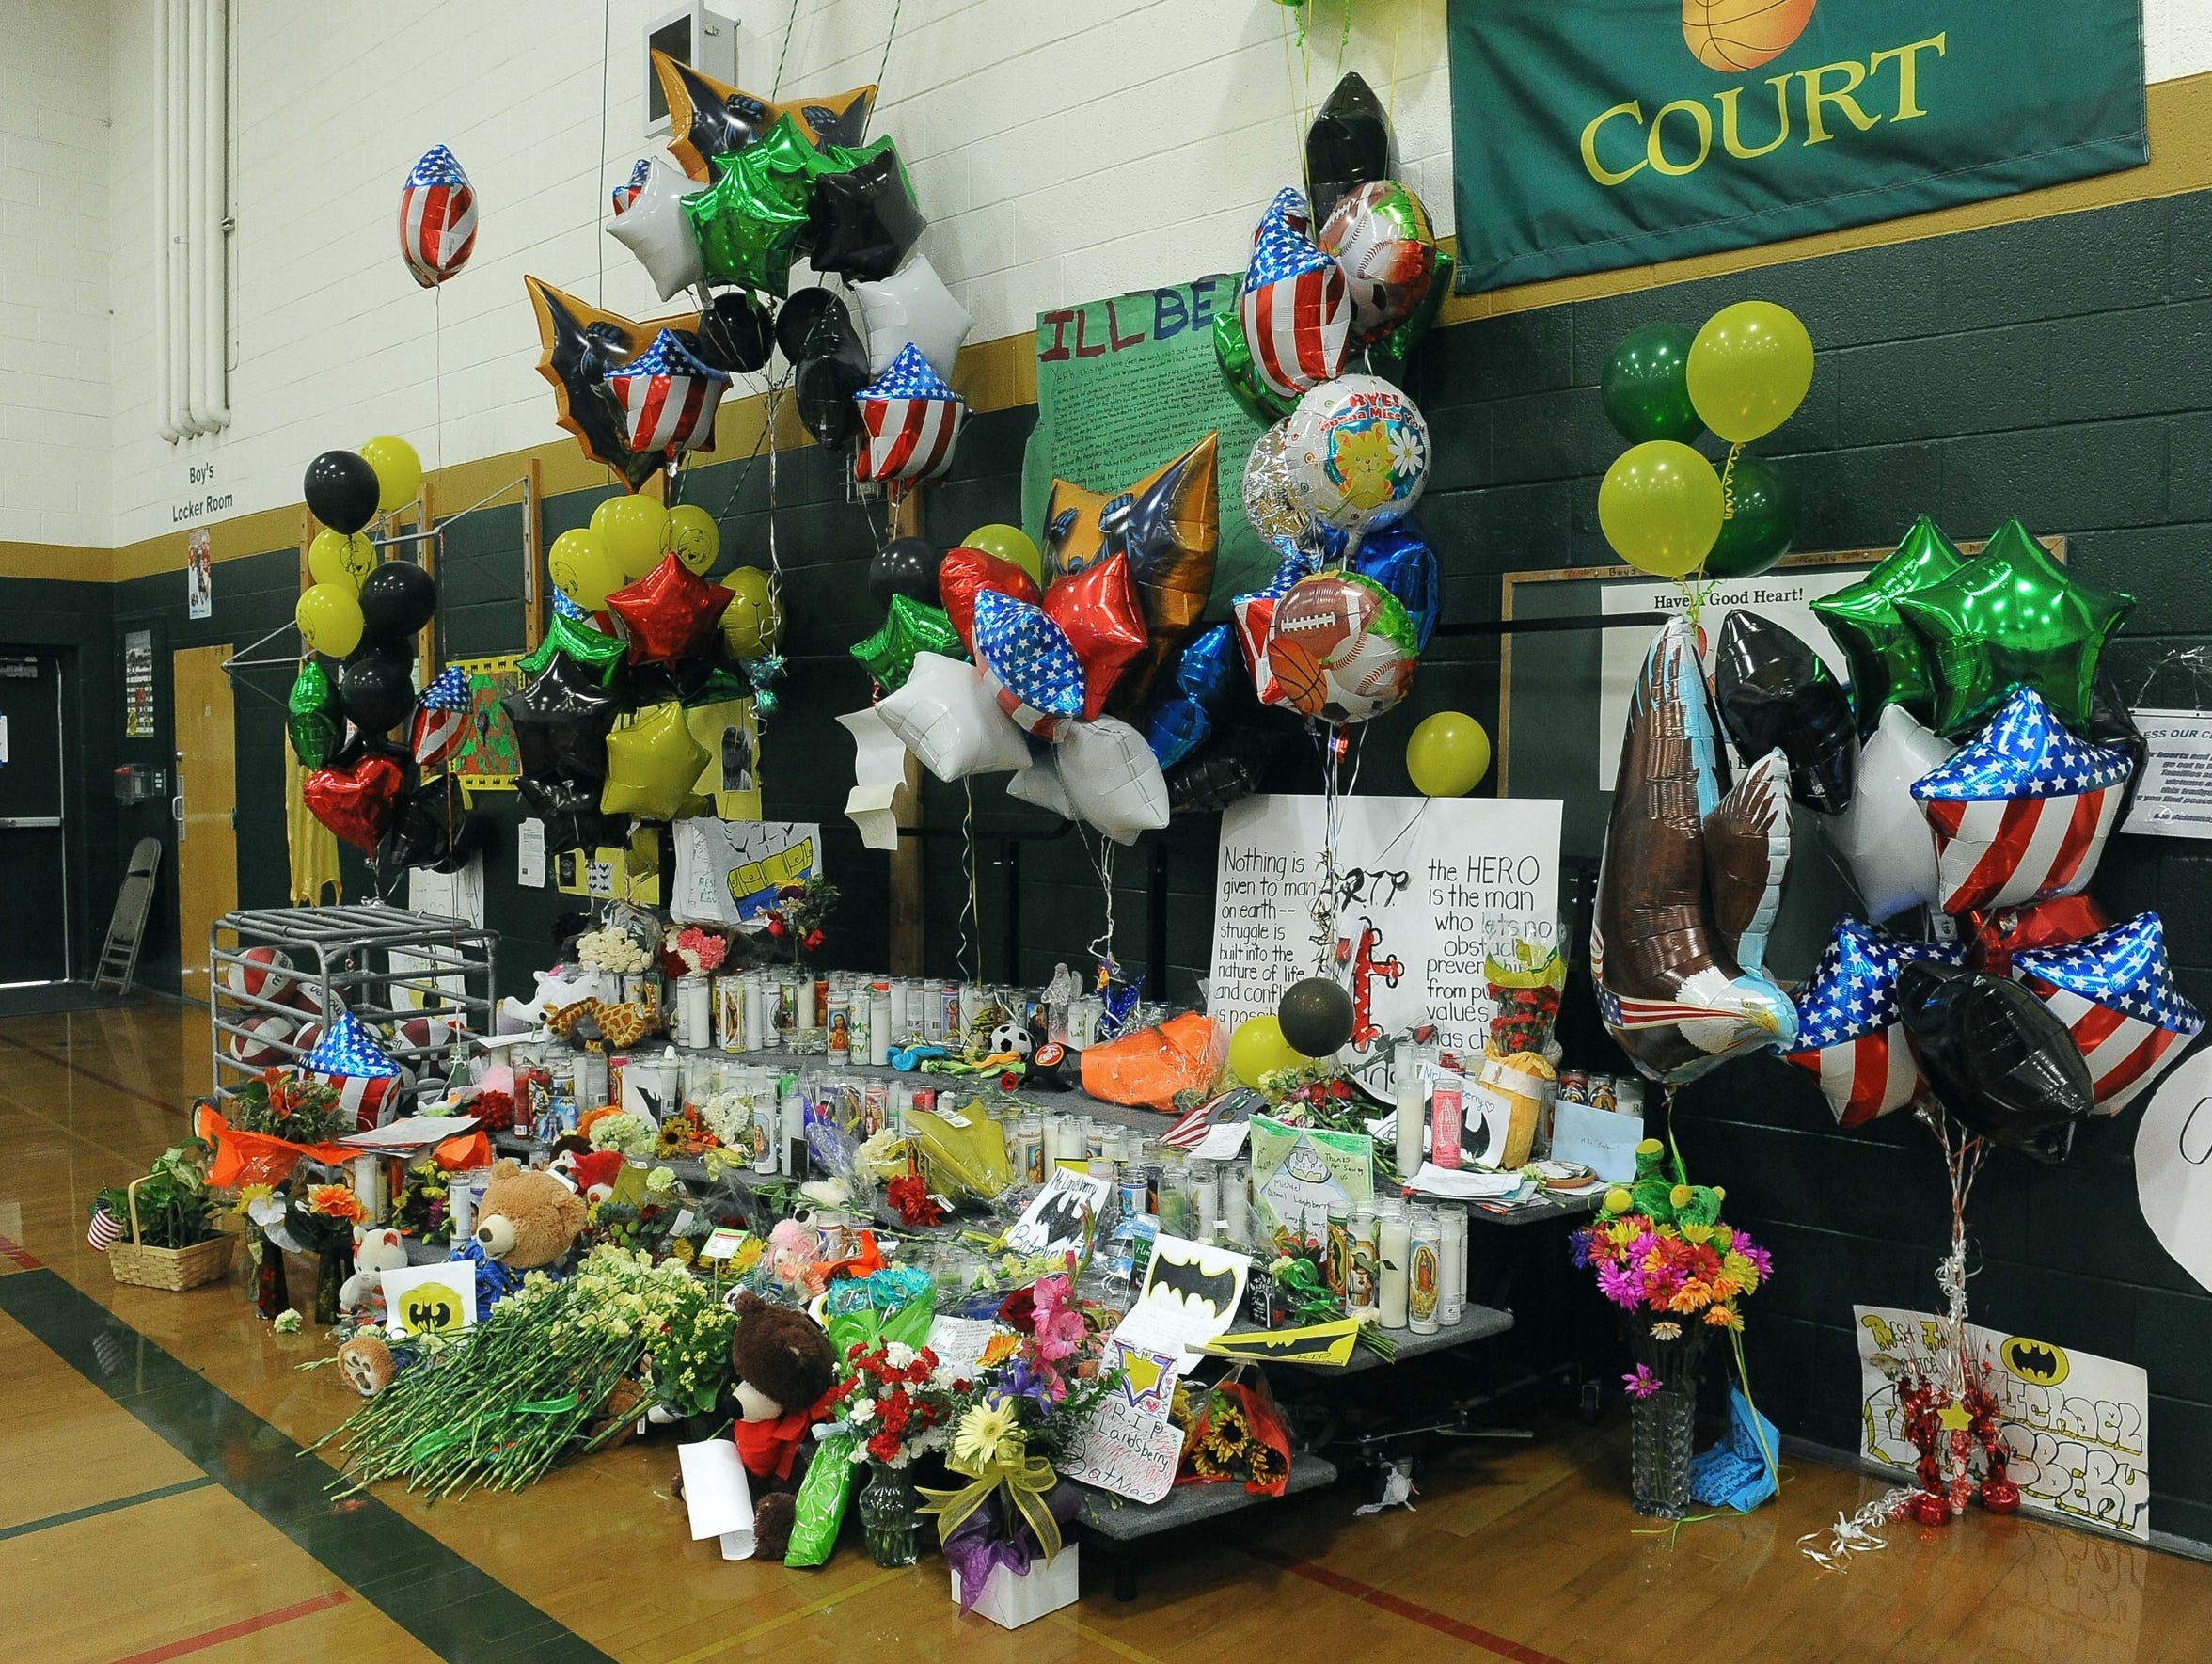 A memorial set up for teacher Michael Landsberry inside